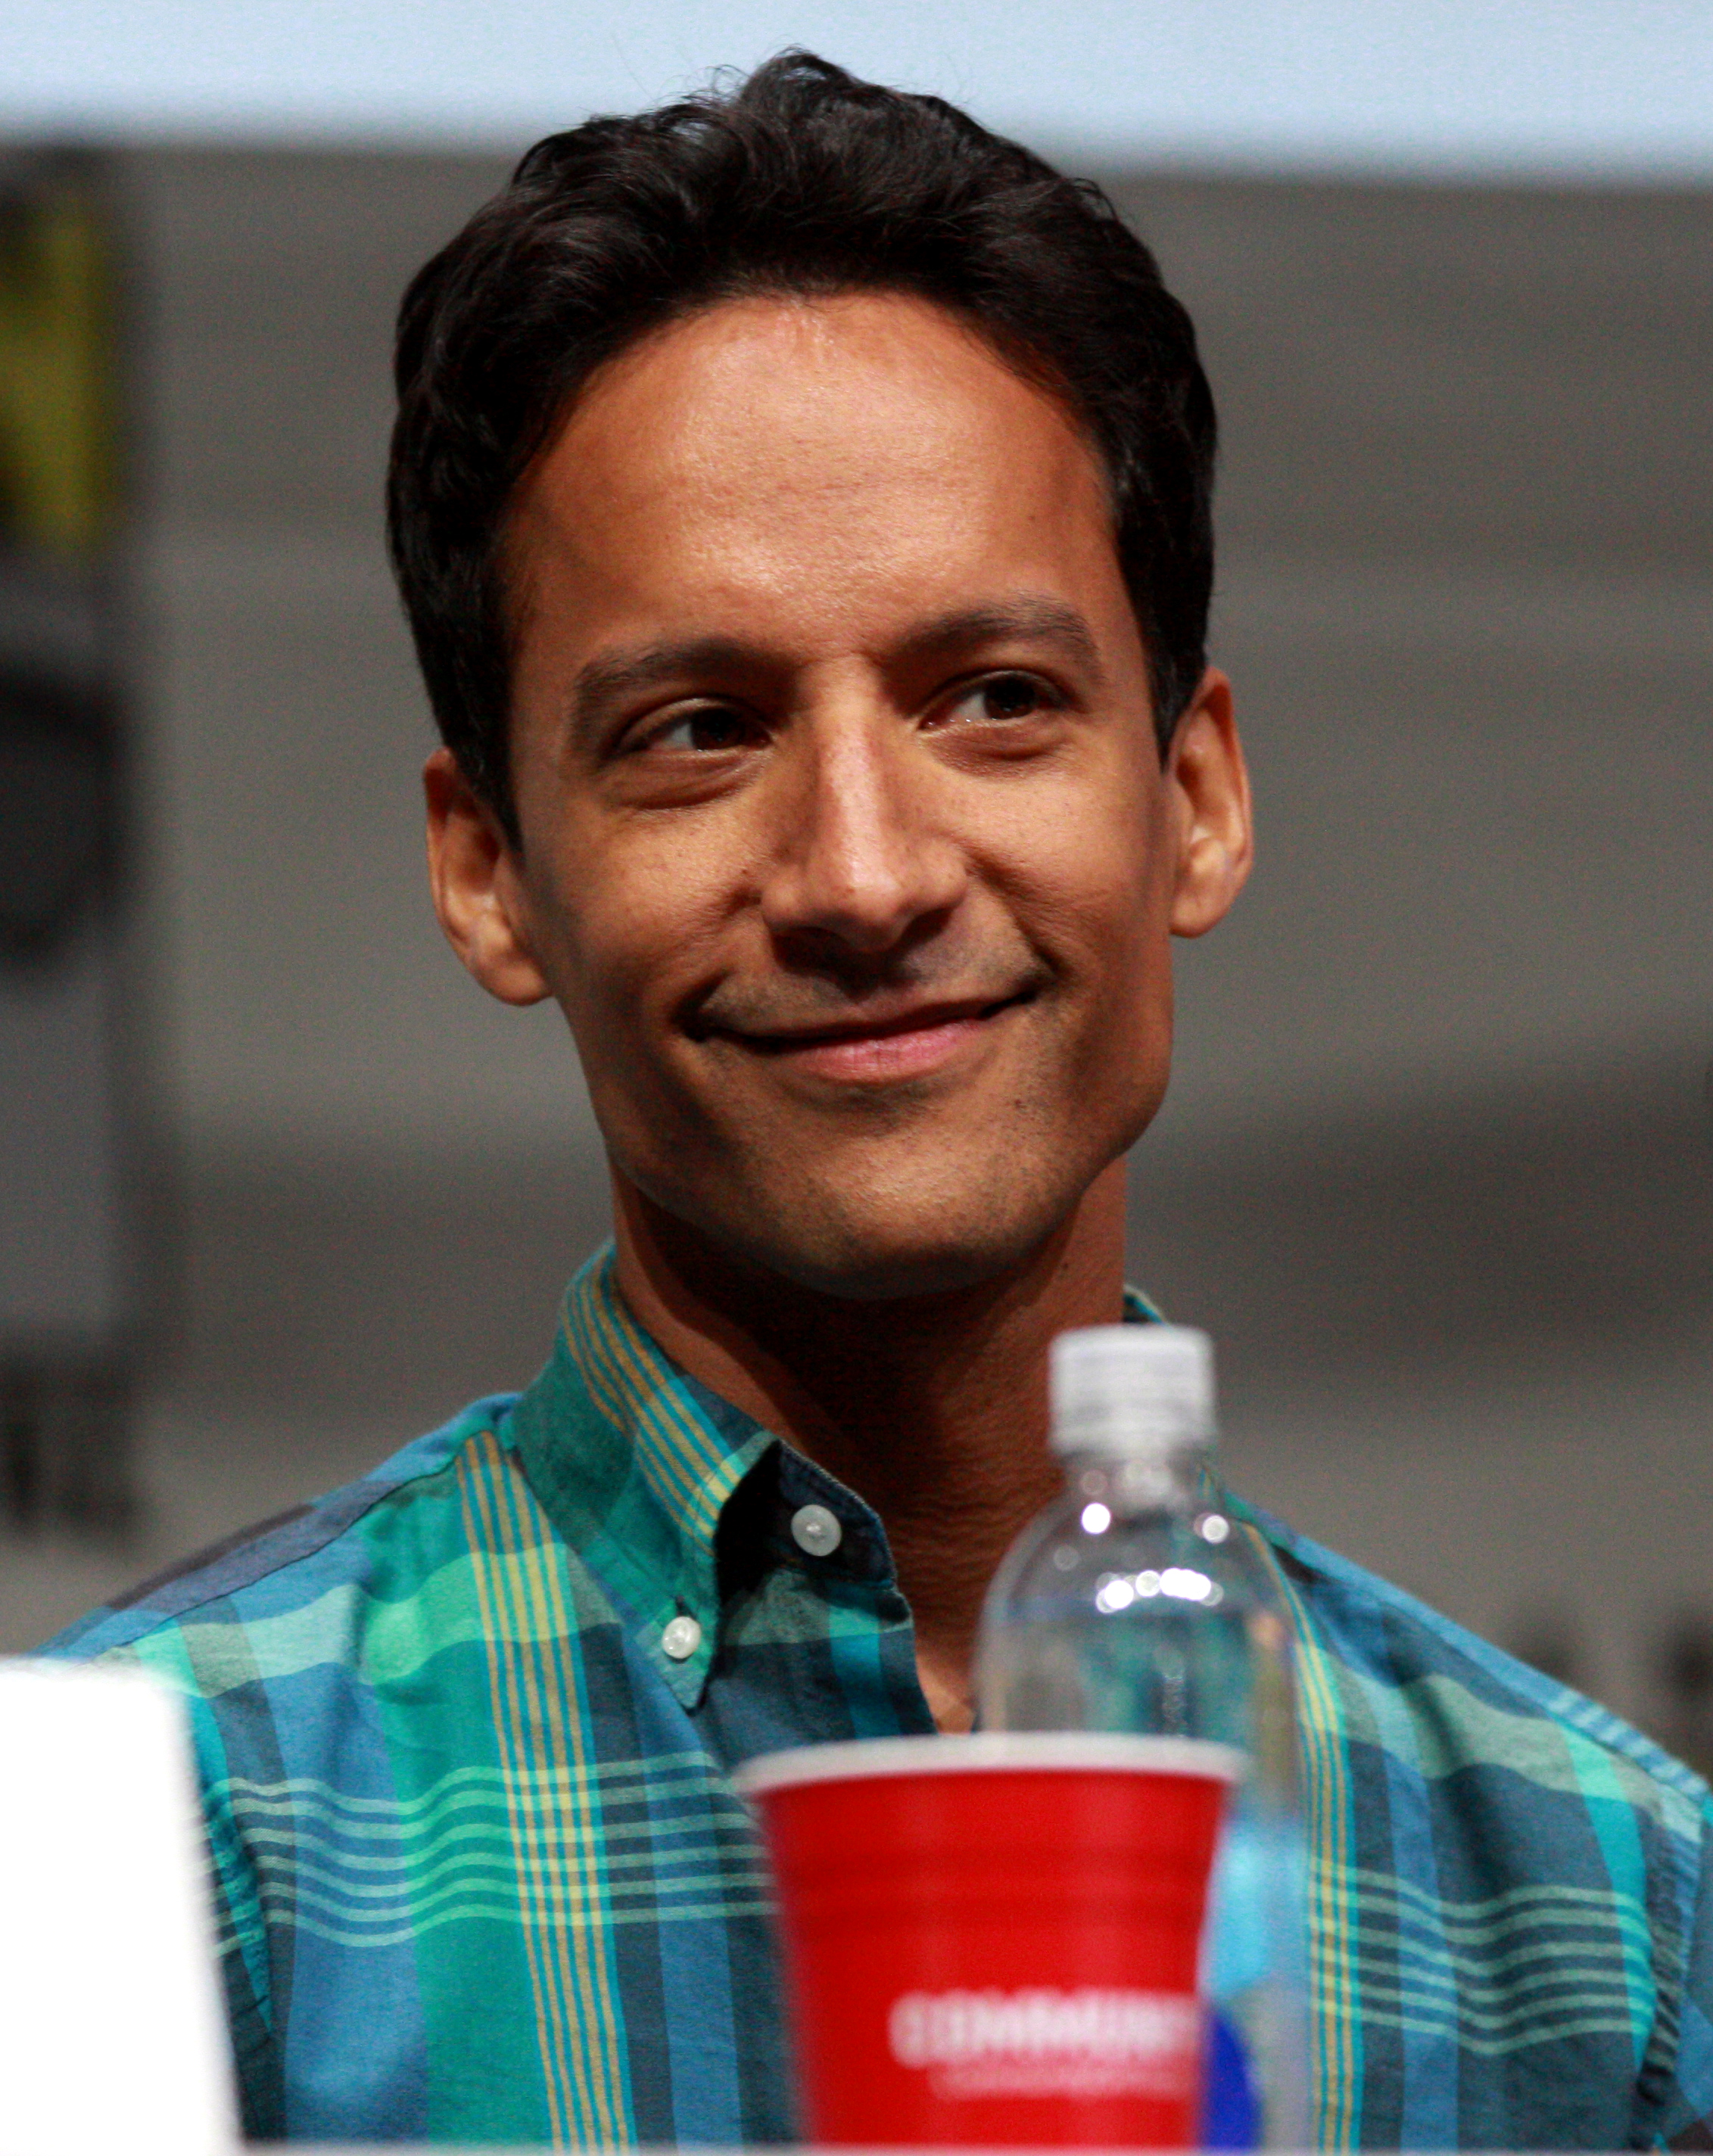 The 41-year old son of father (?) and mother(?) Danny Pudi in 2020 photo. Danny Pudi earned a million dollar salary - leaving the net worth at 3 million in 2020